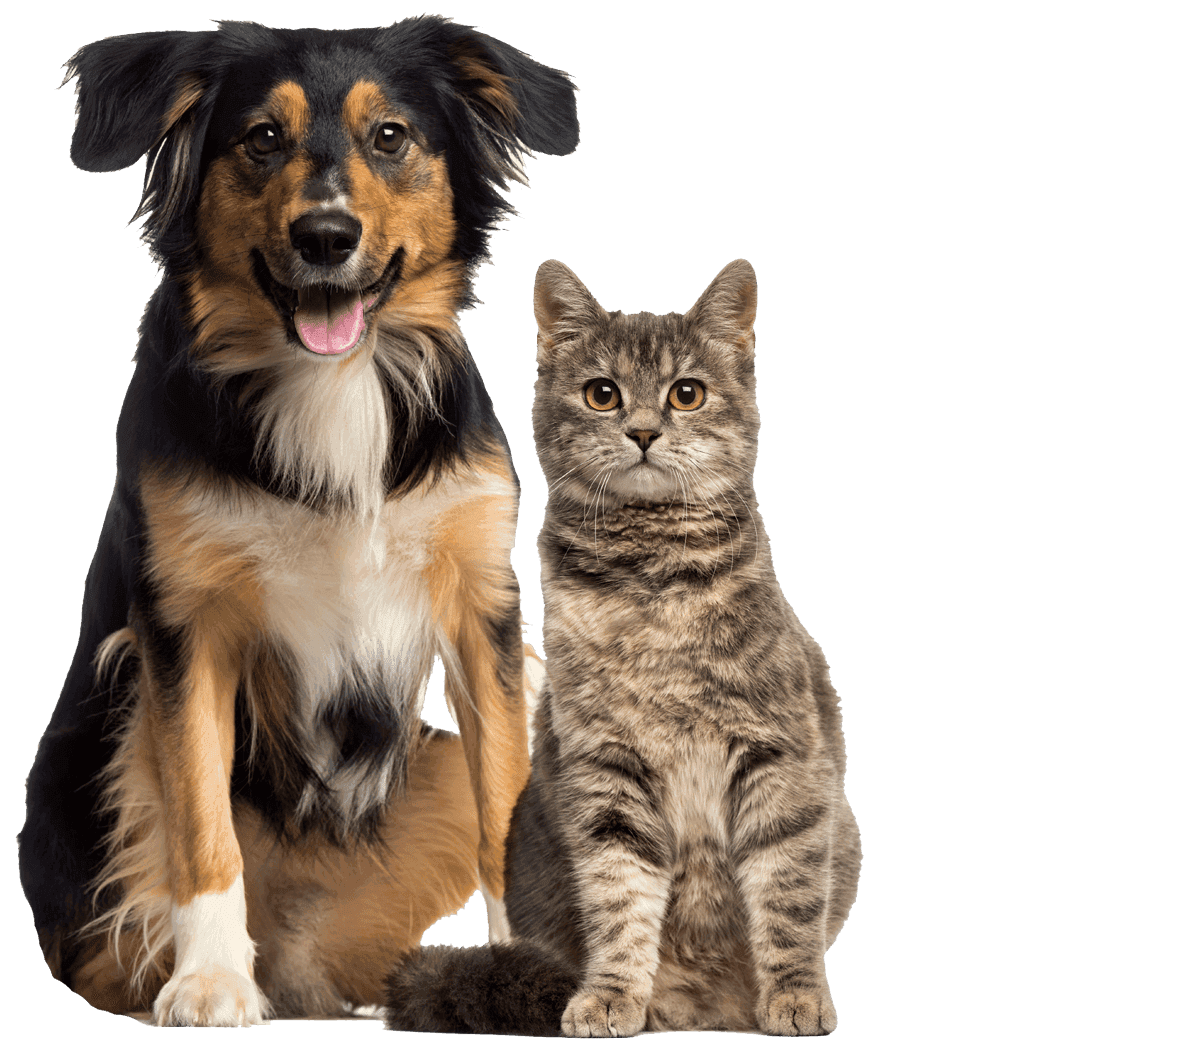 Charlotte veterinarian cat and dog